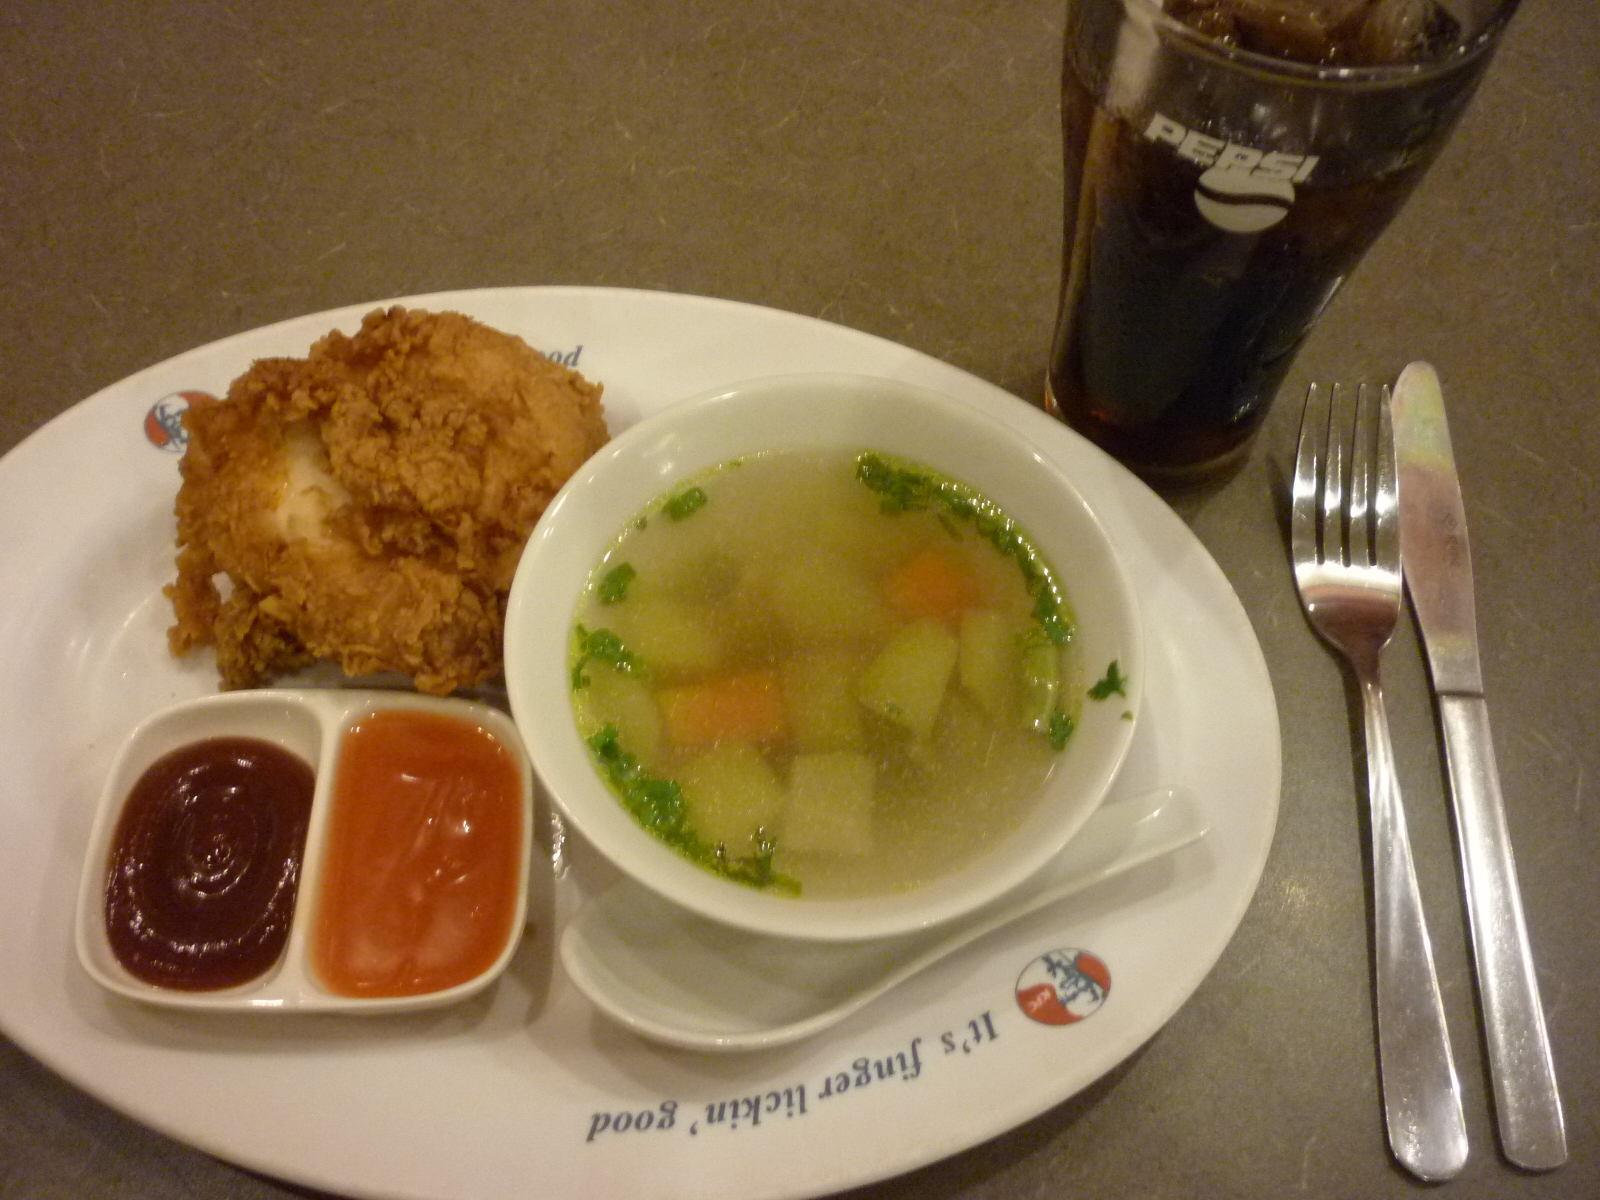 kfc vietnam Essays - largest database of quality sample essays and research papers on kfc vietnam.